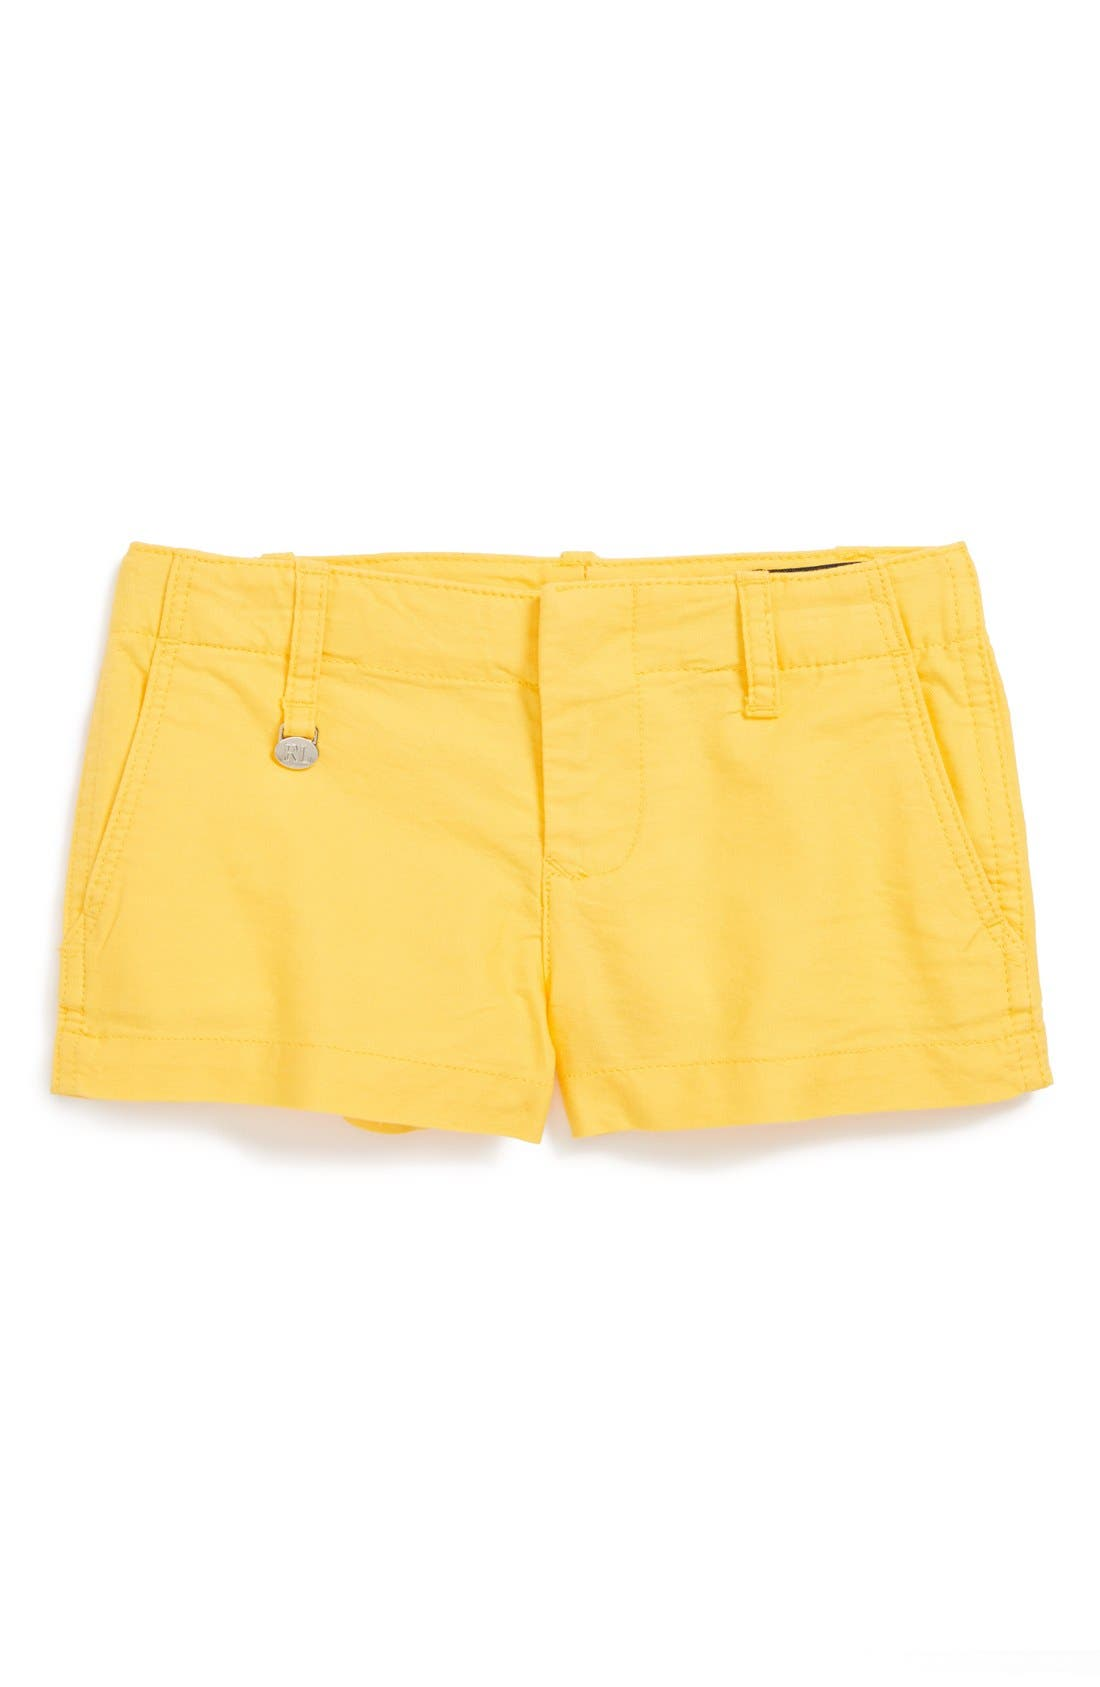 Main Image - Ralph Lauren Oxford Cotton Shorts (Toddler Girls)